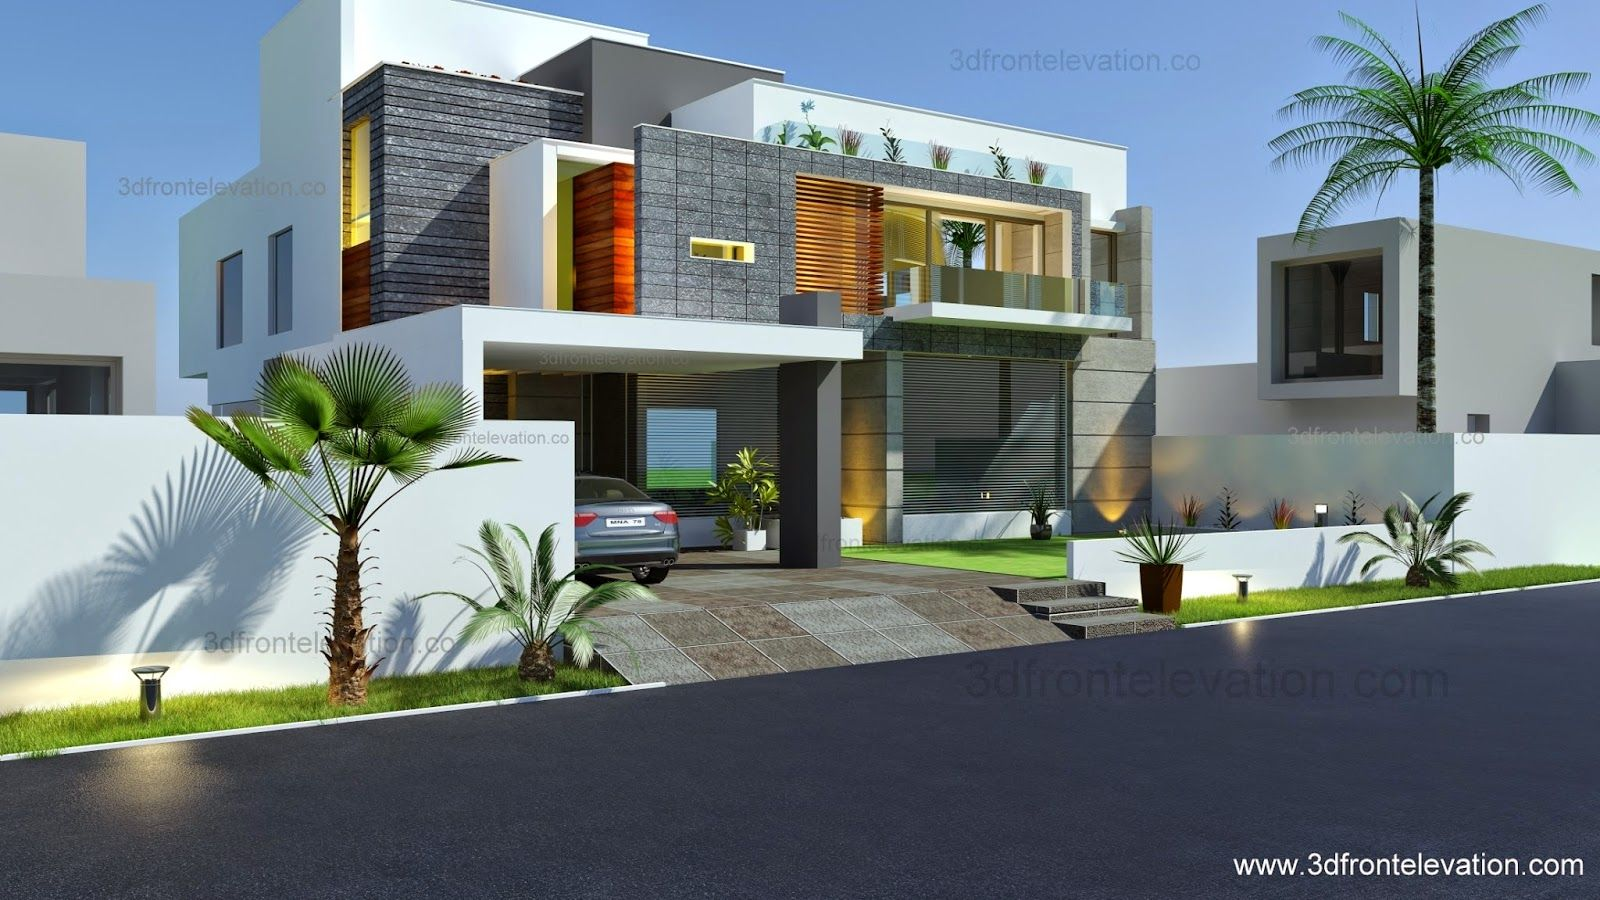 New Home Plans 2015 Of 3d Front Beautiful Modern Contemporary